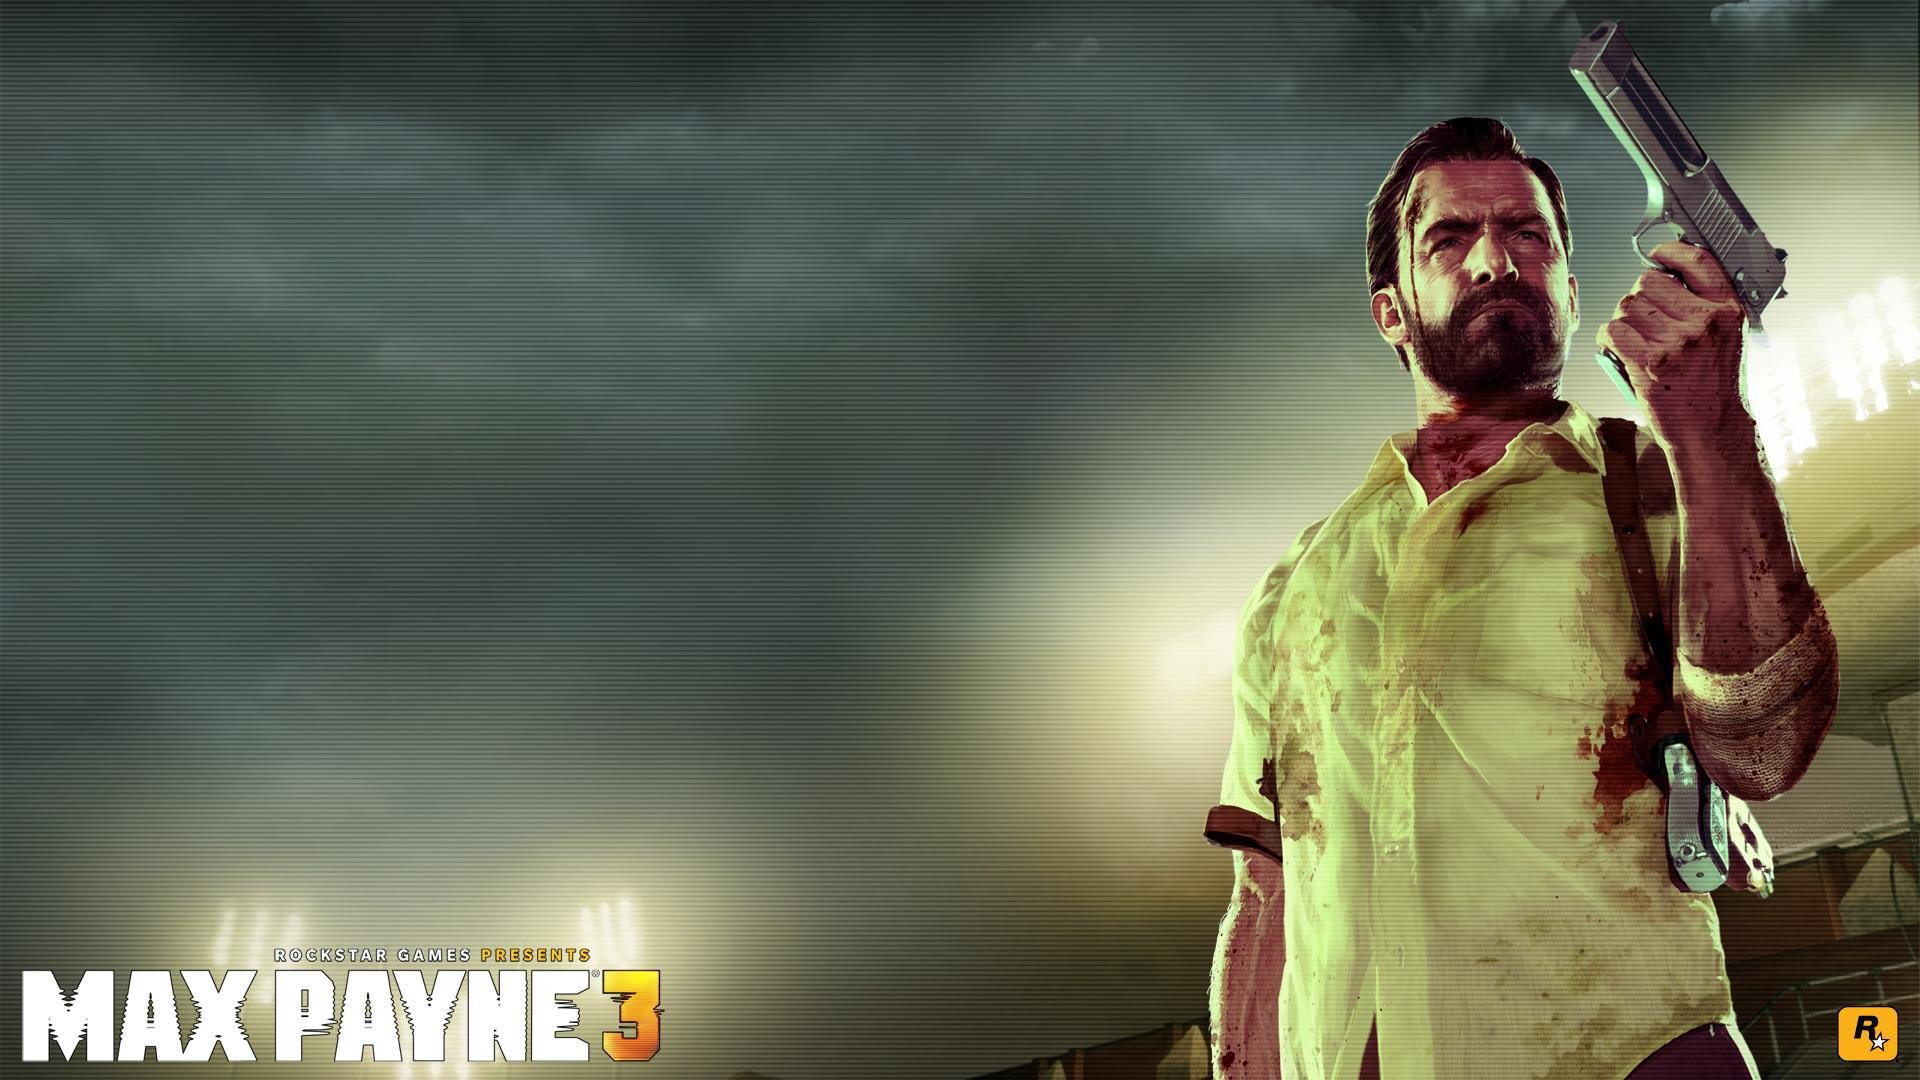 Max Payne 3 Wallpapers 1920x1080 Full Hd 1080p Desktop Backgrounds